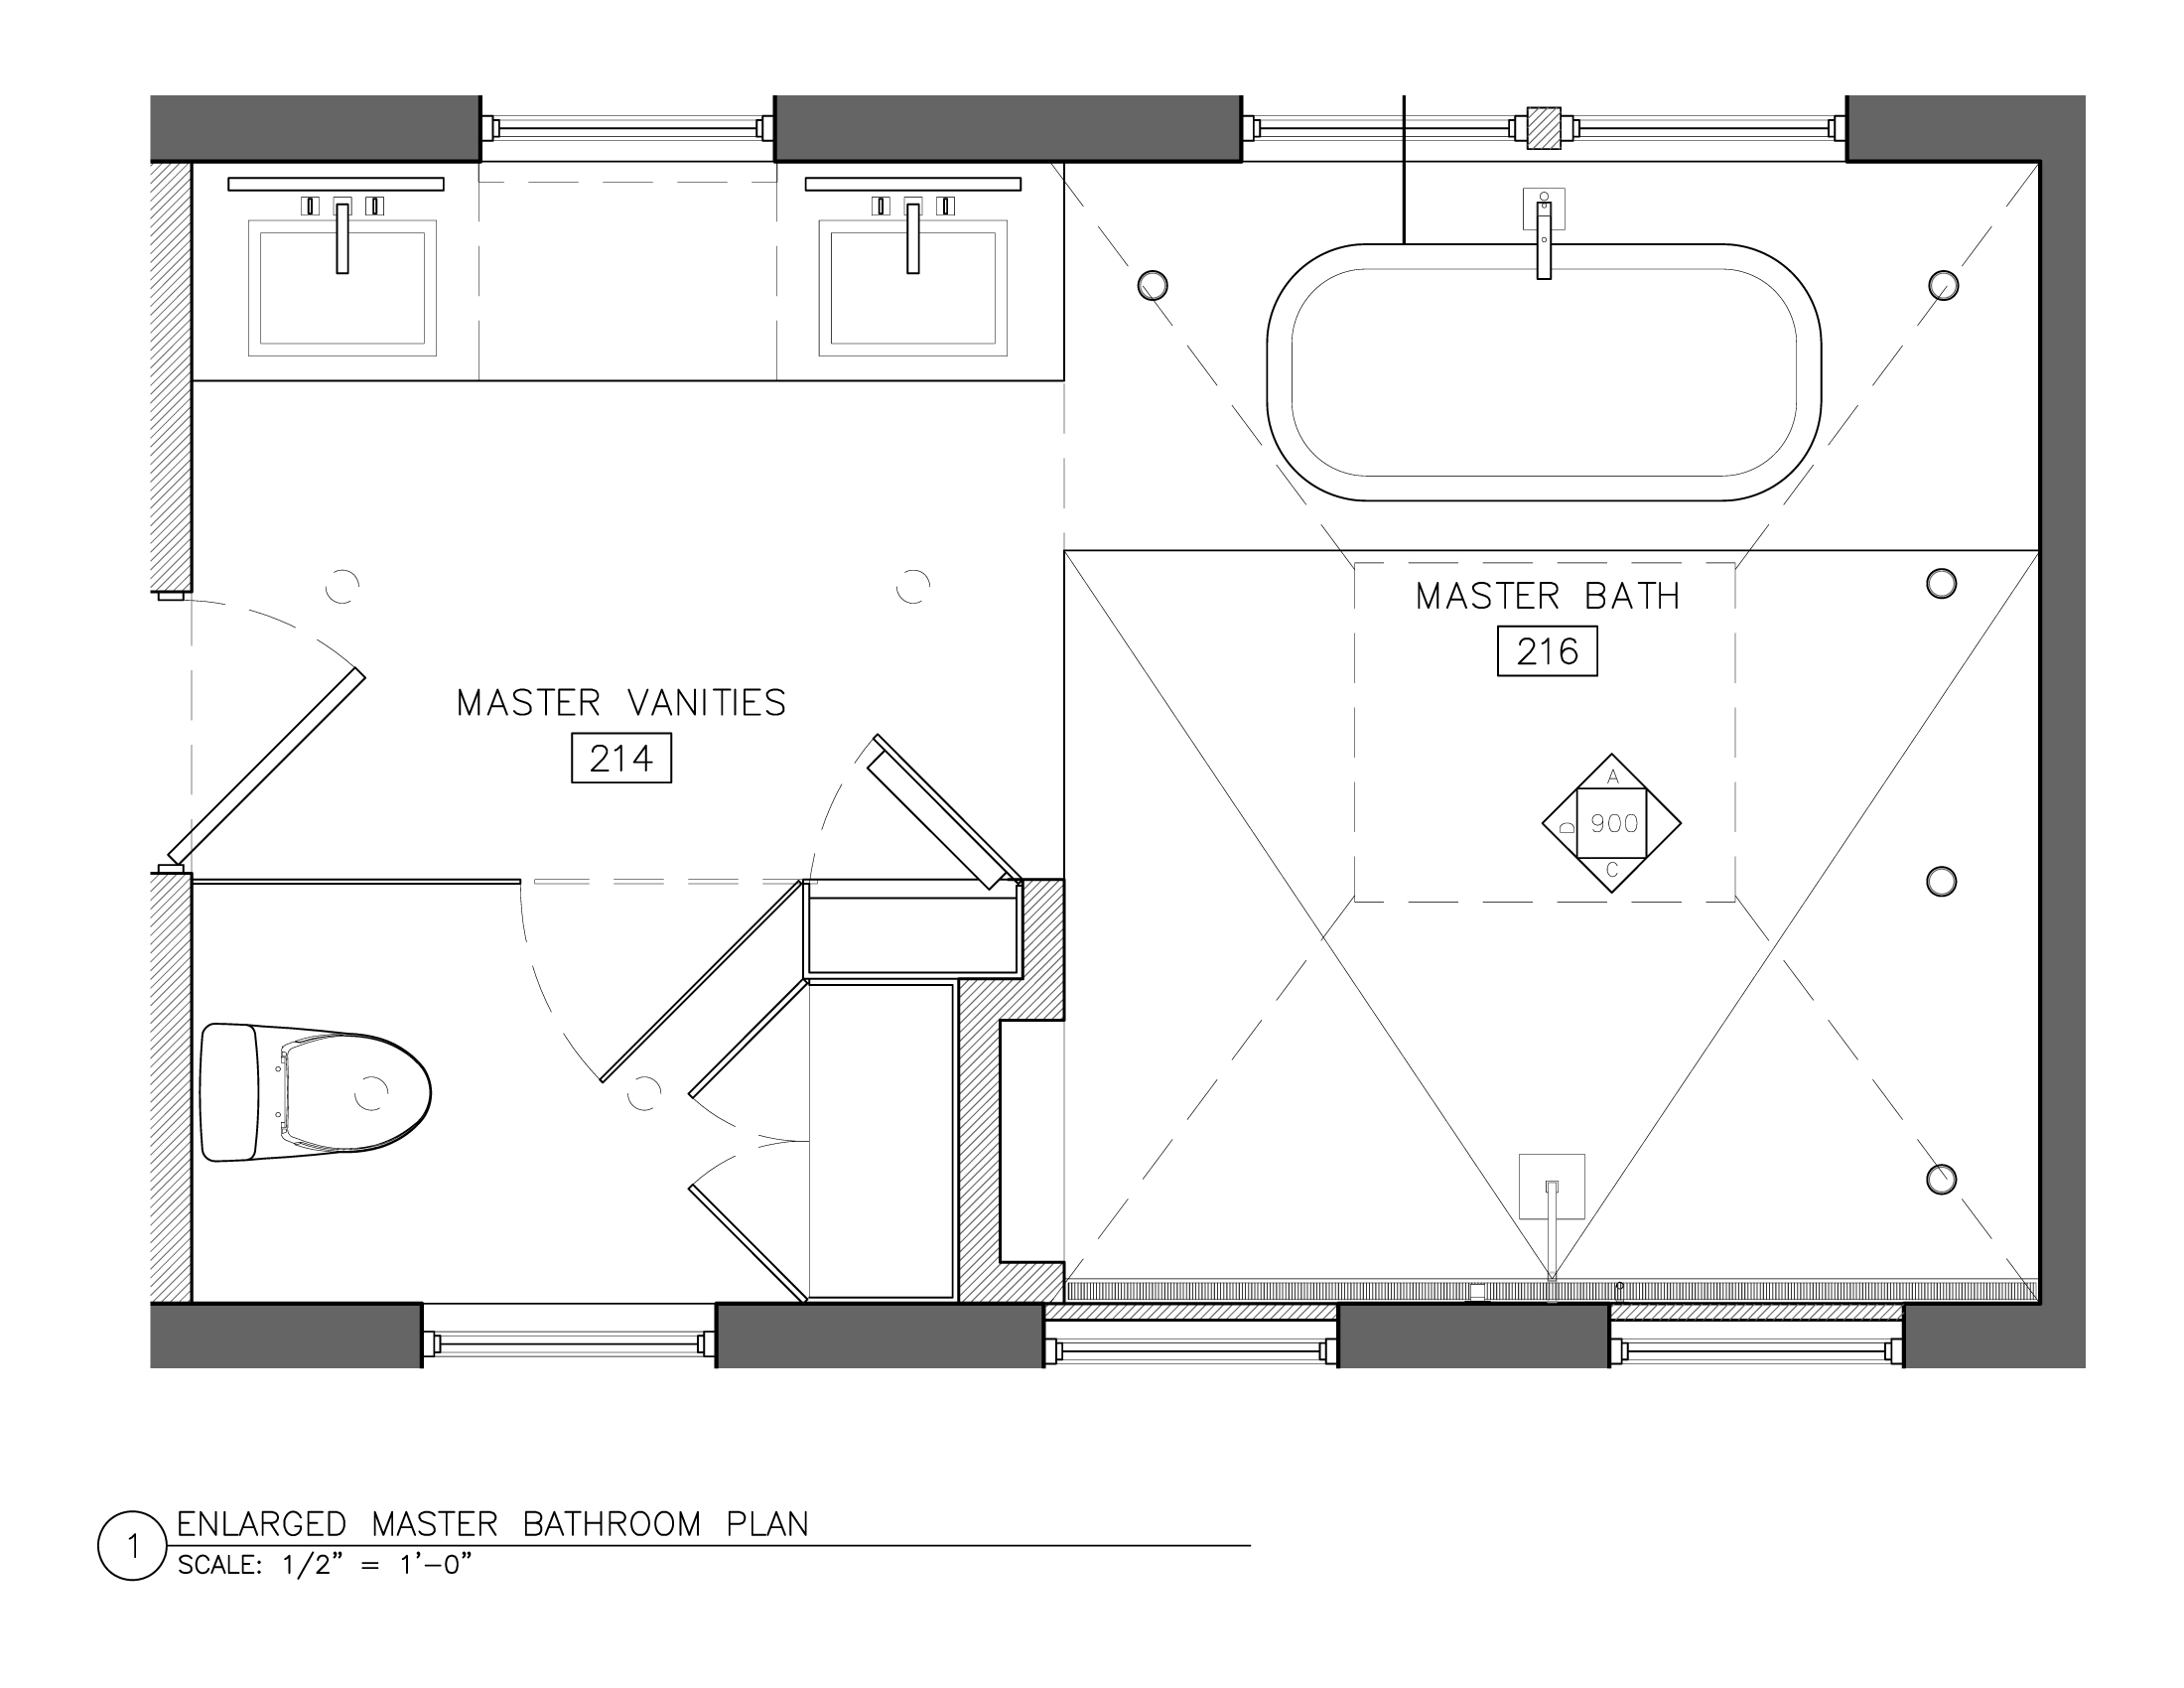 Master bathroom floor plans - Plans Design Projects House Ideas Master Bath